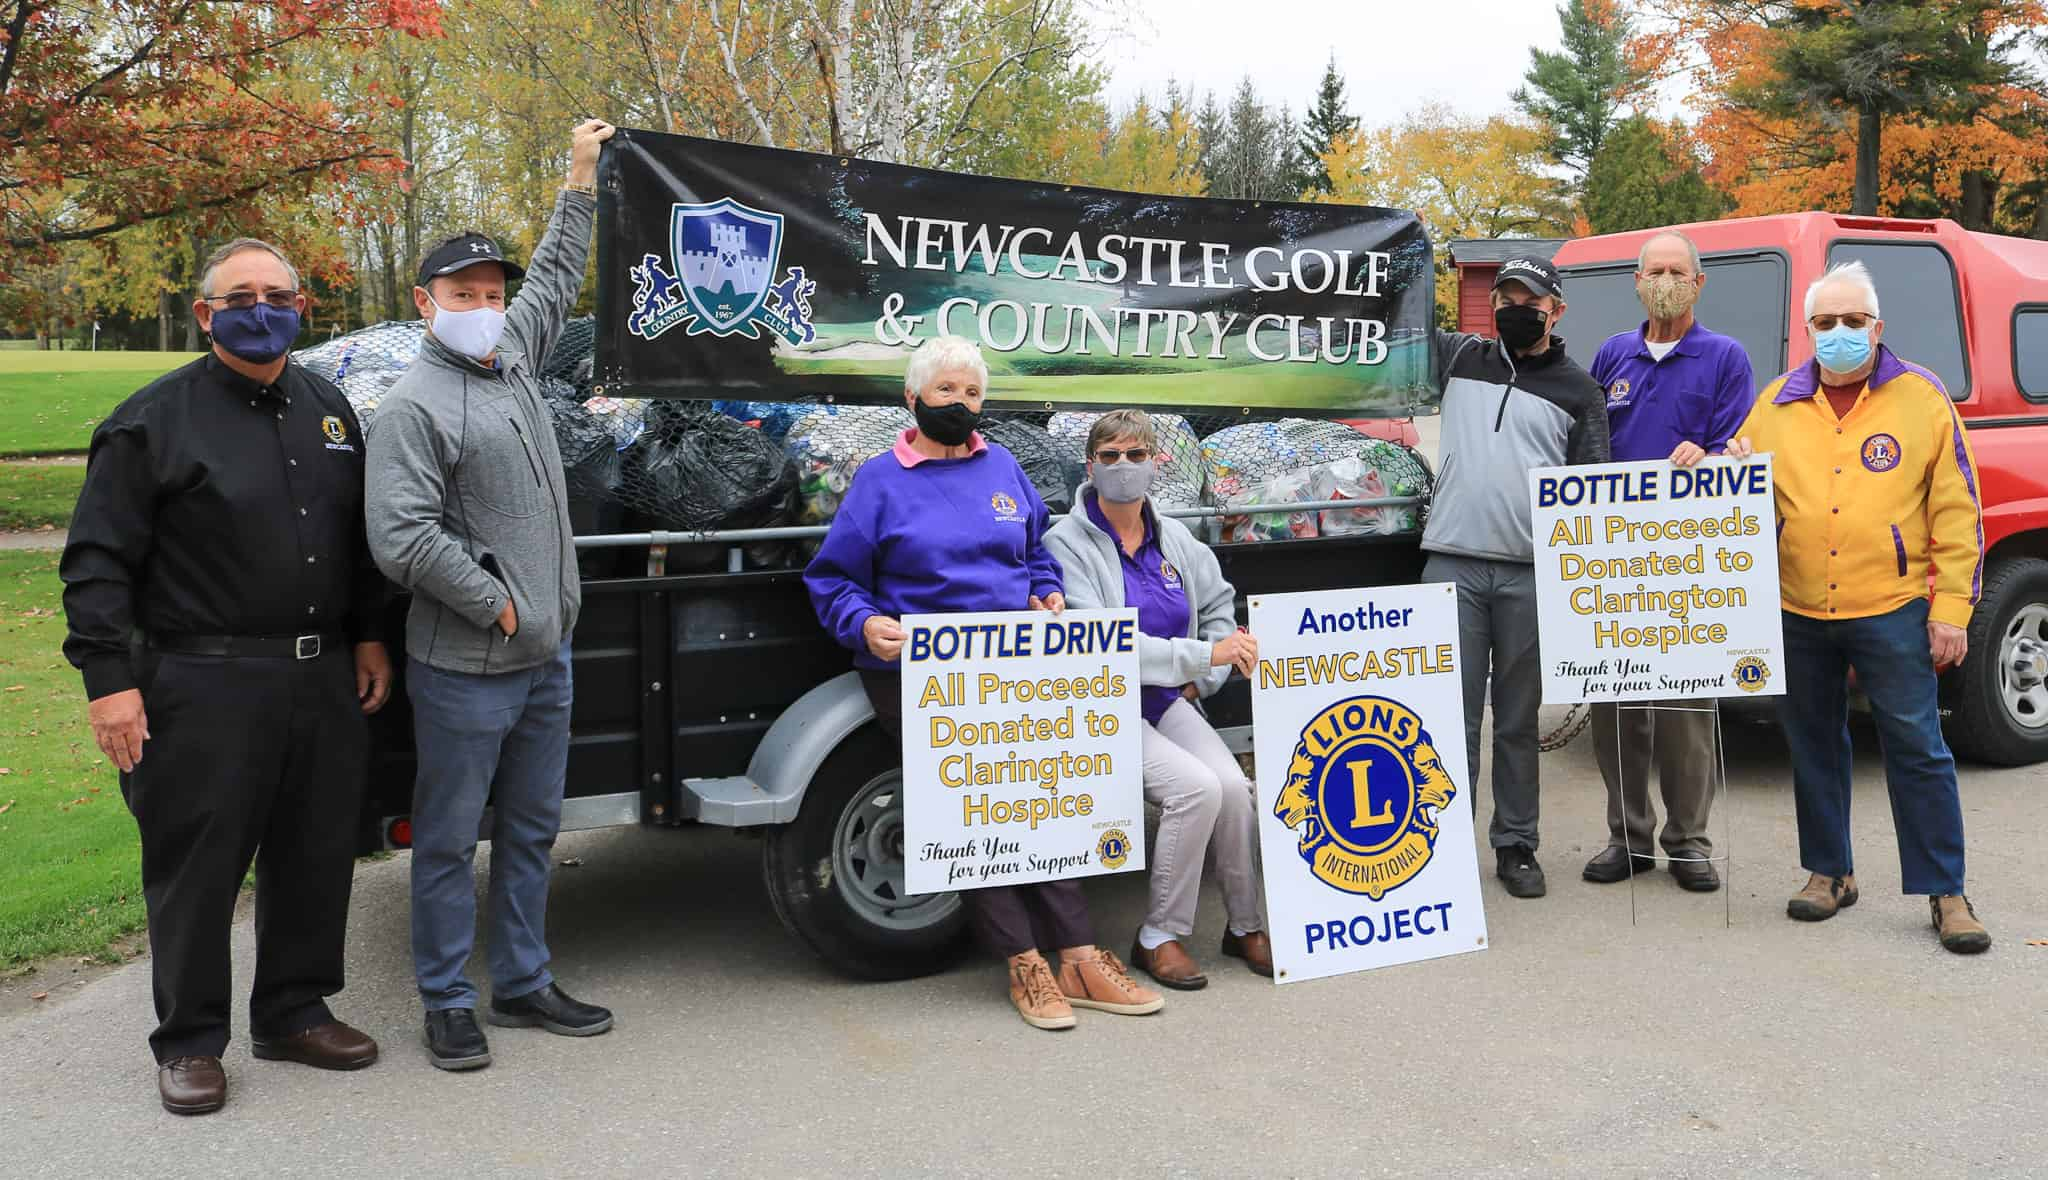 Newcastle Golf bottle drive for hospice a success